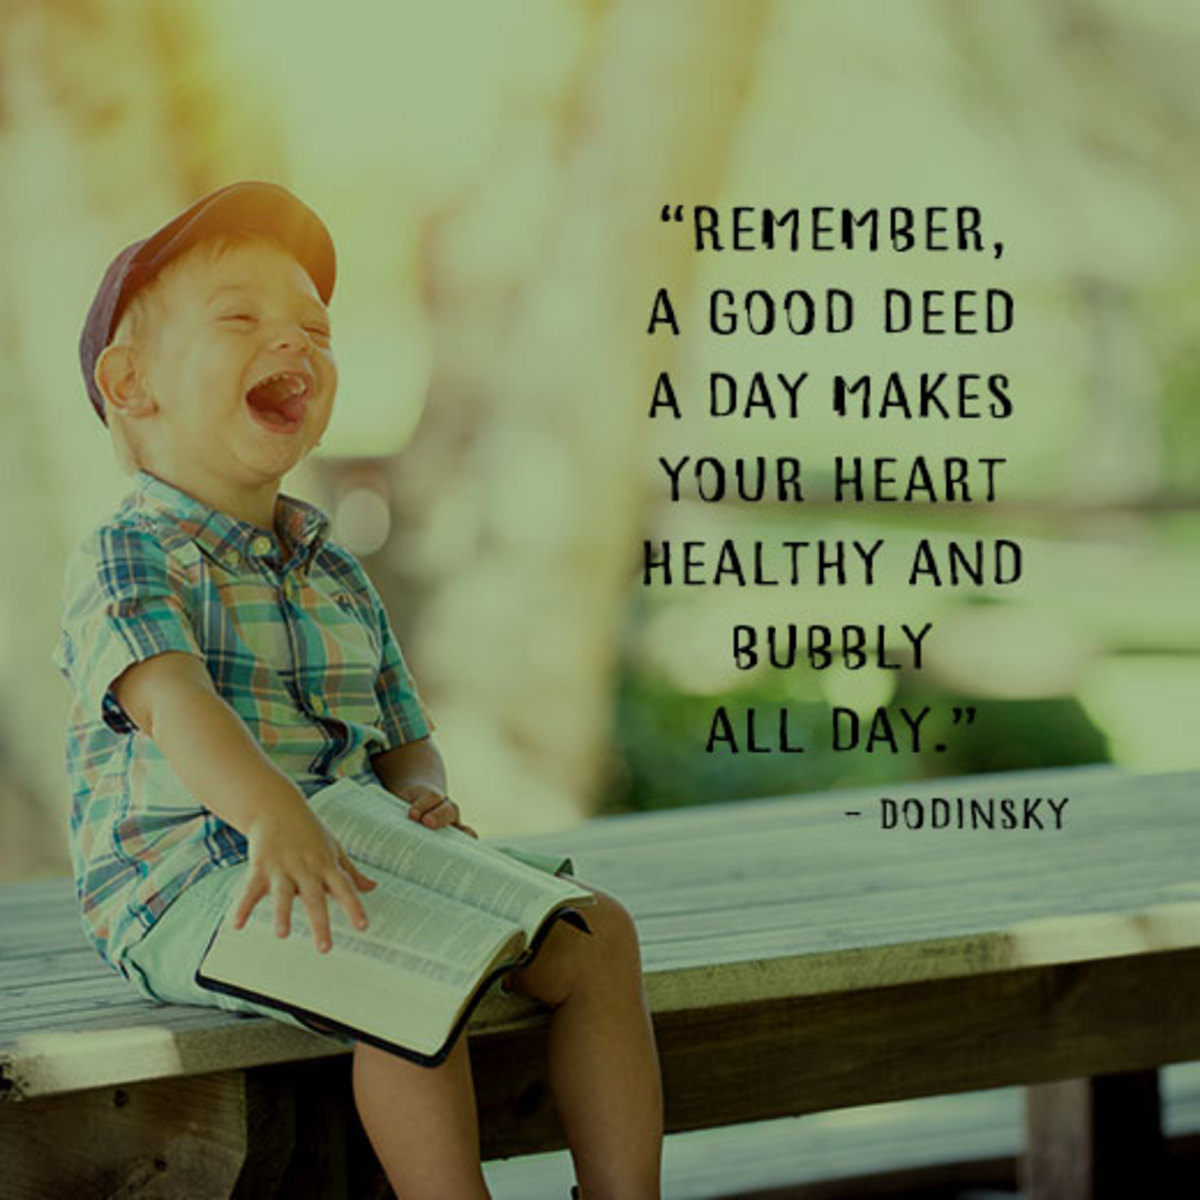 """""""Remember, a good deed a day makes your heart healthy and bubbly all day."""" - Dodinsky"""